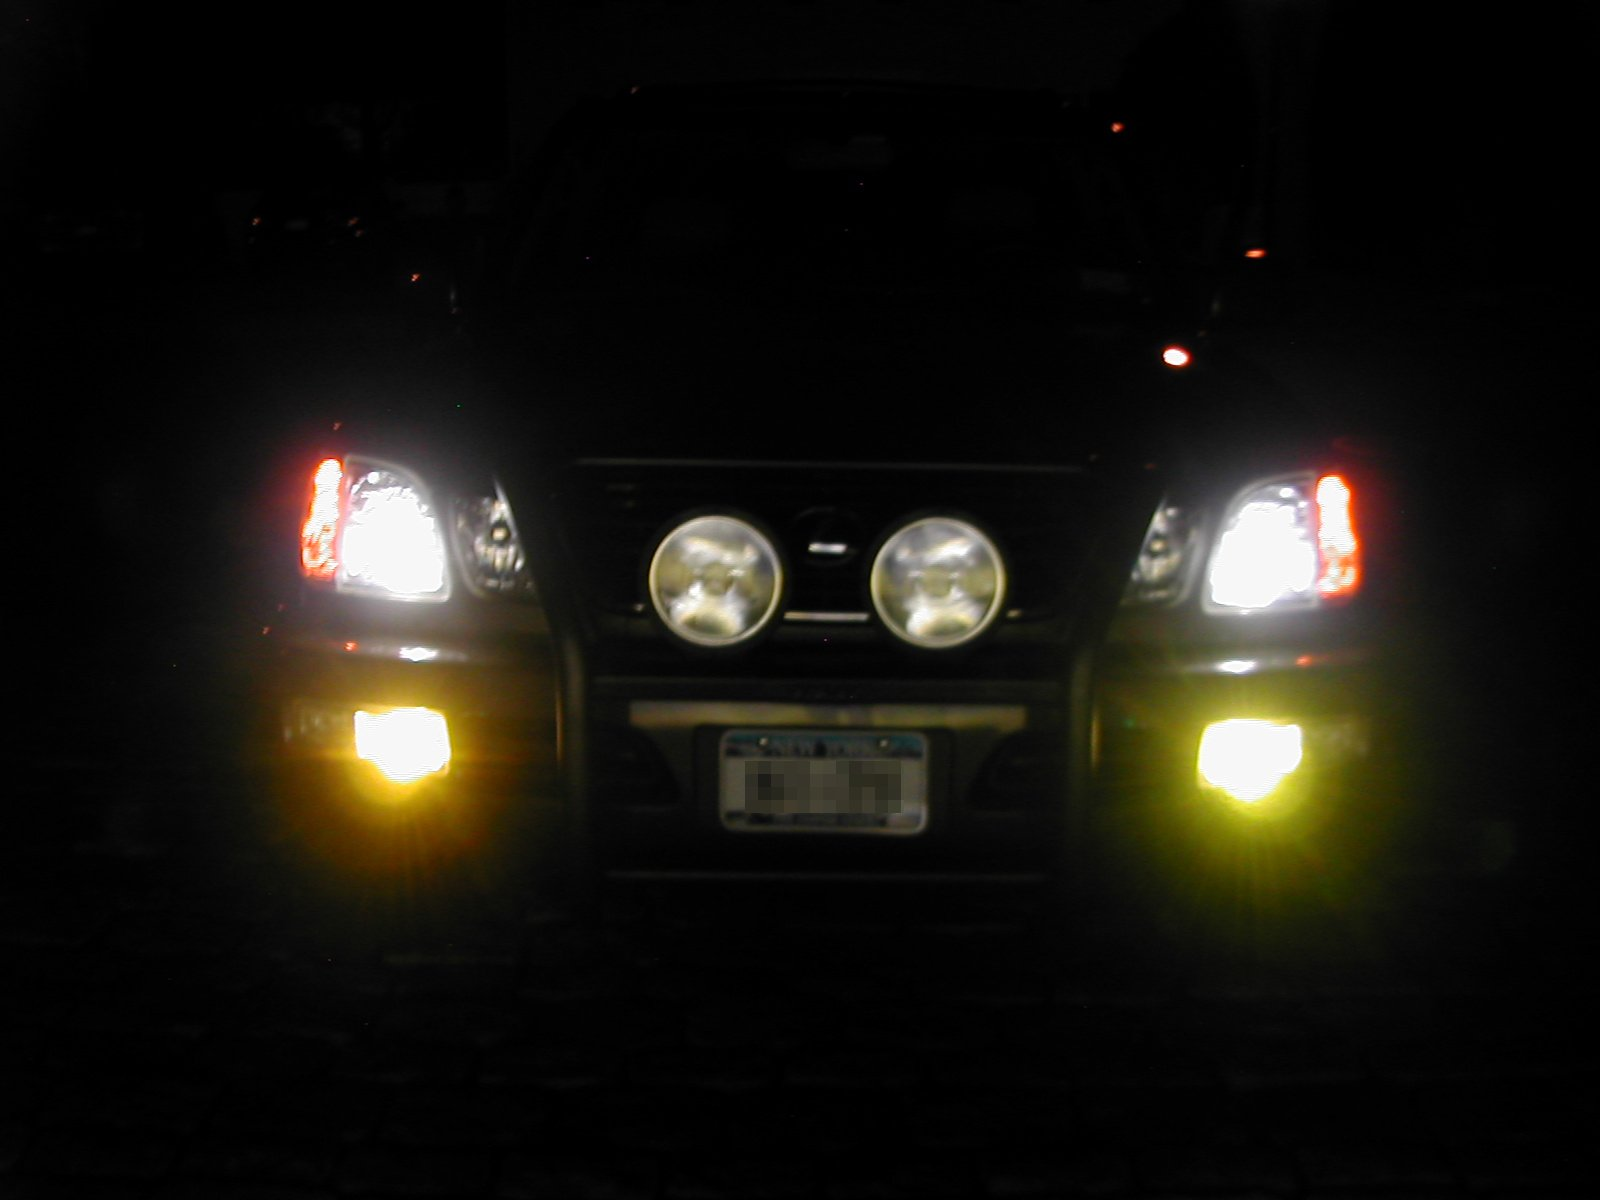 hight resolution of and for comparison here is the stock 2005 ls430 hid headlights